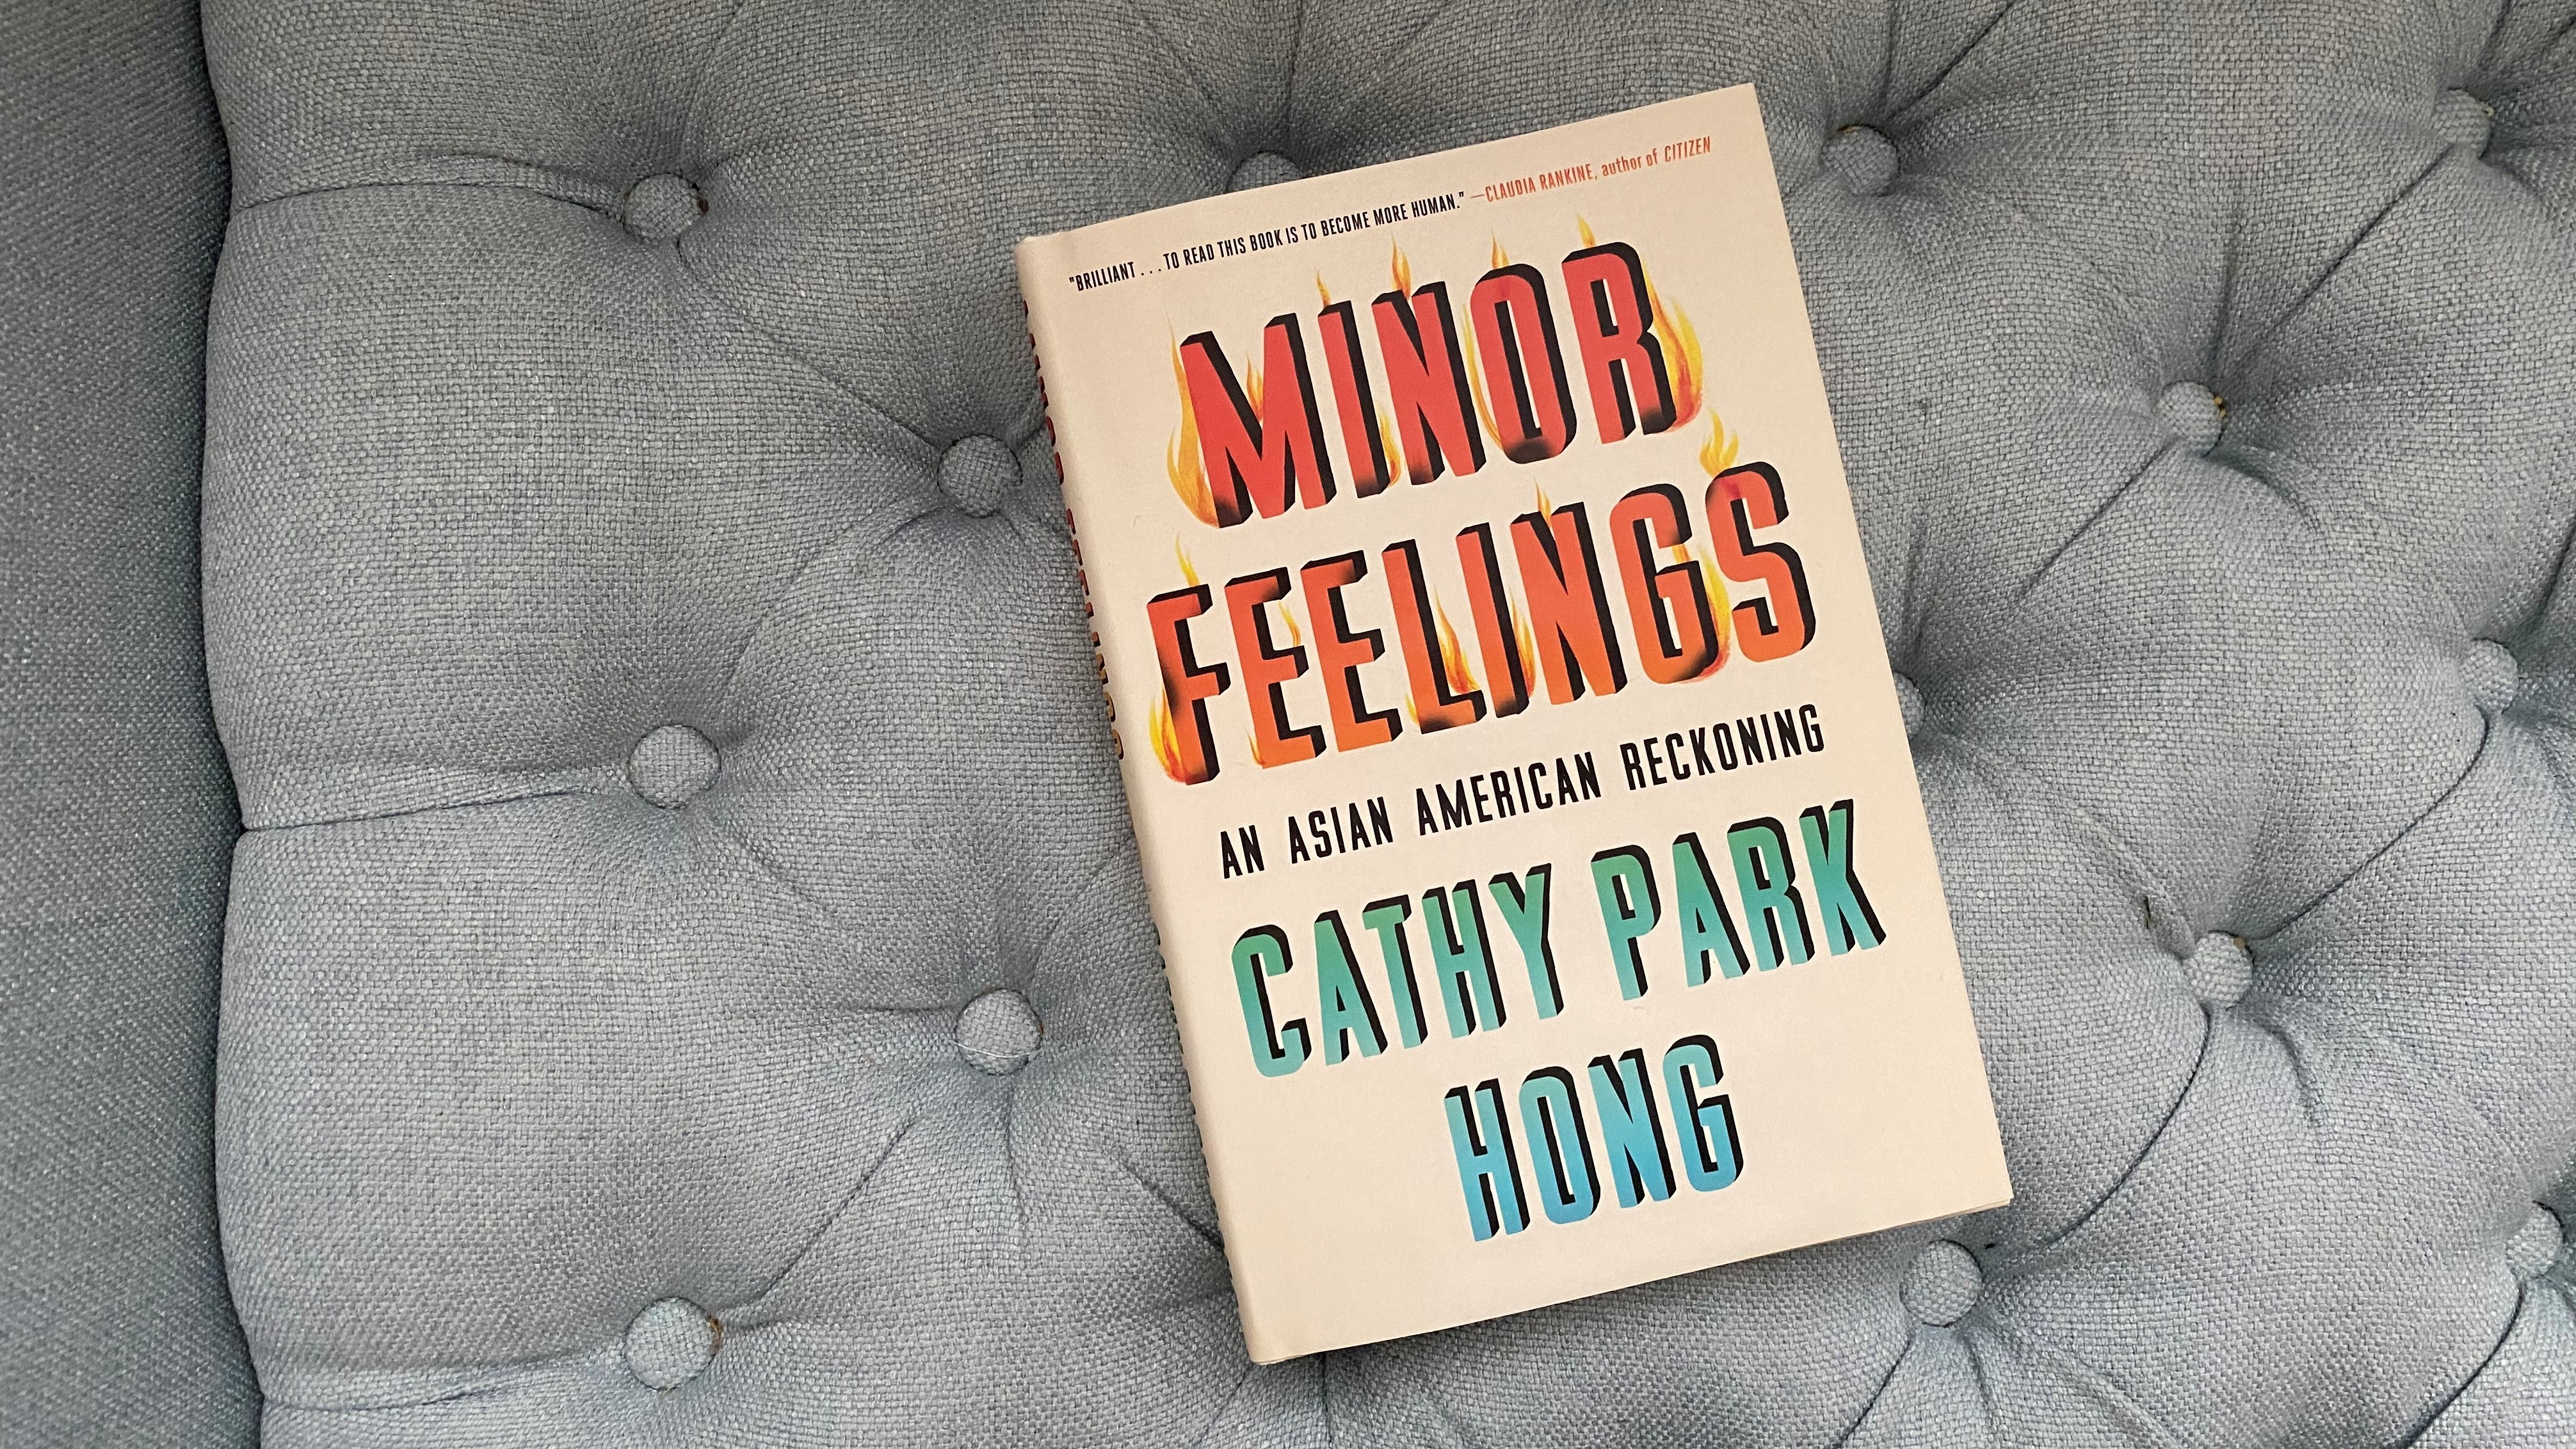 www.kpbs.org: In 'Minor Feelings,' Asian American Racial Trauma Is Laid Bare